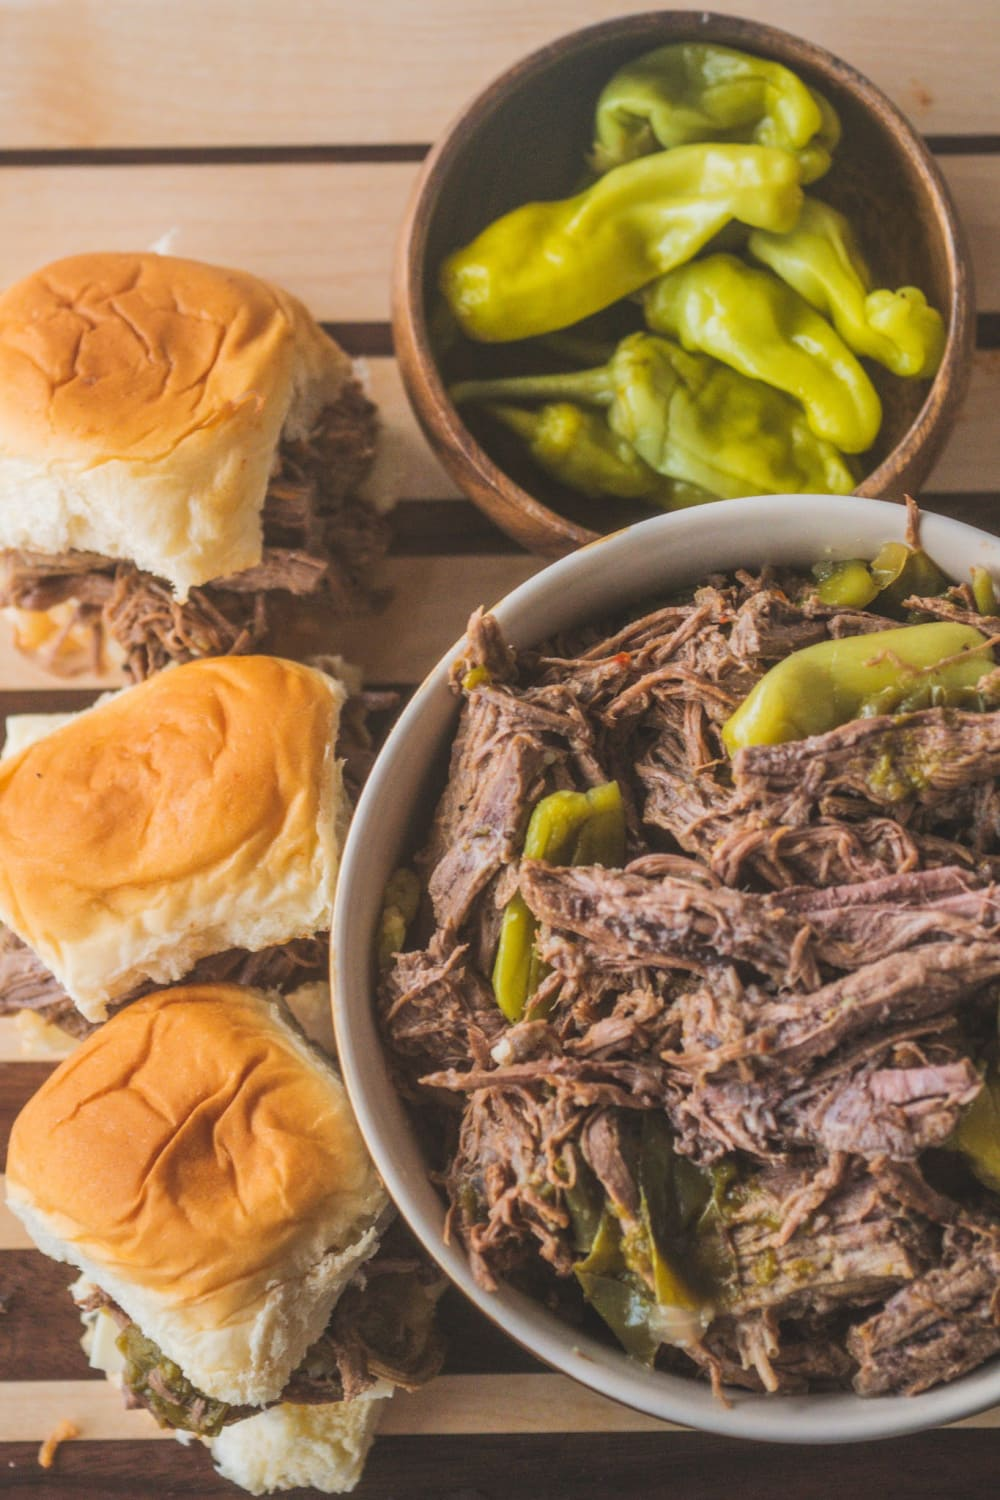 This Instant Pot Italian Beef Sandwich is a perfect for a family dinner or serving for a party! Juicy beef is cooked with Italian pepperoncini and shredded for a spicy beef sandwich filling. Great for a family dinner or on slider for a game day party! #instantpot #Italianbeef